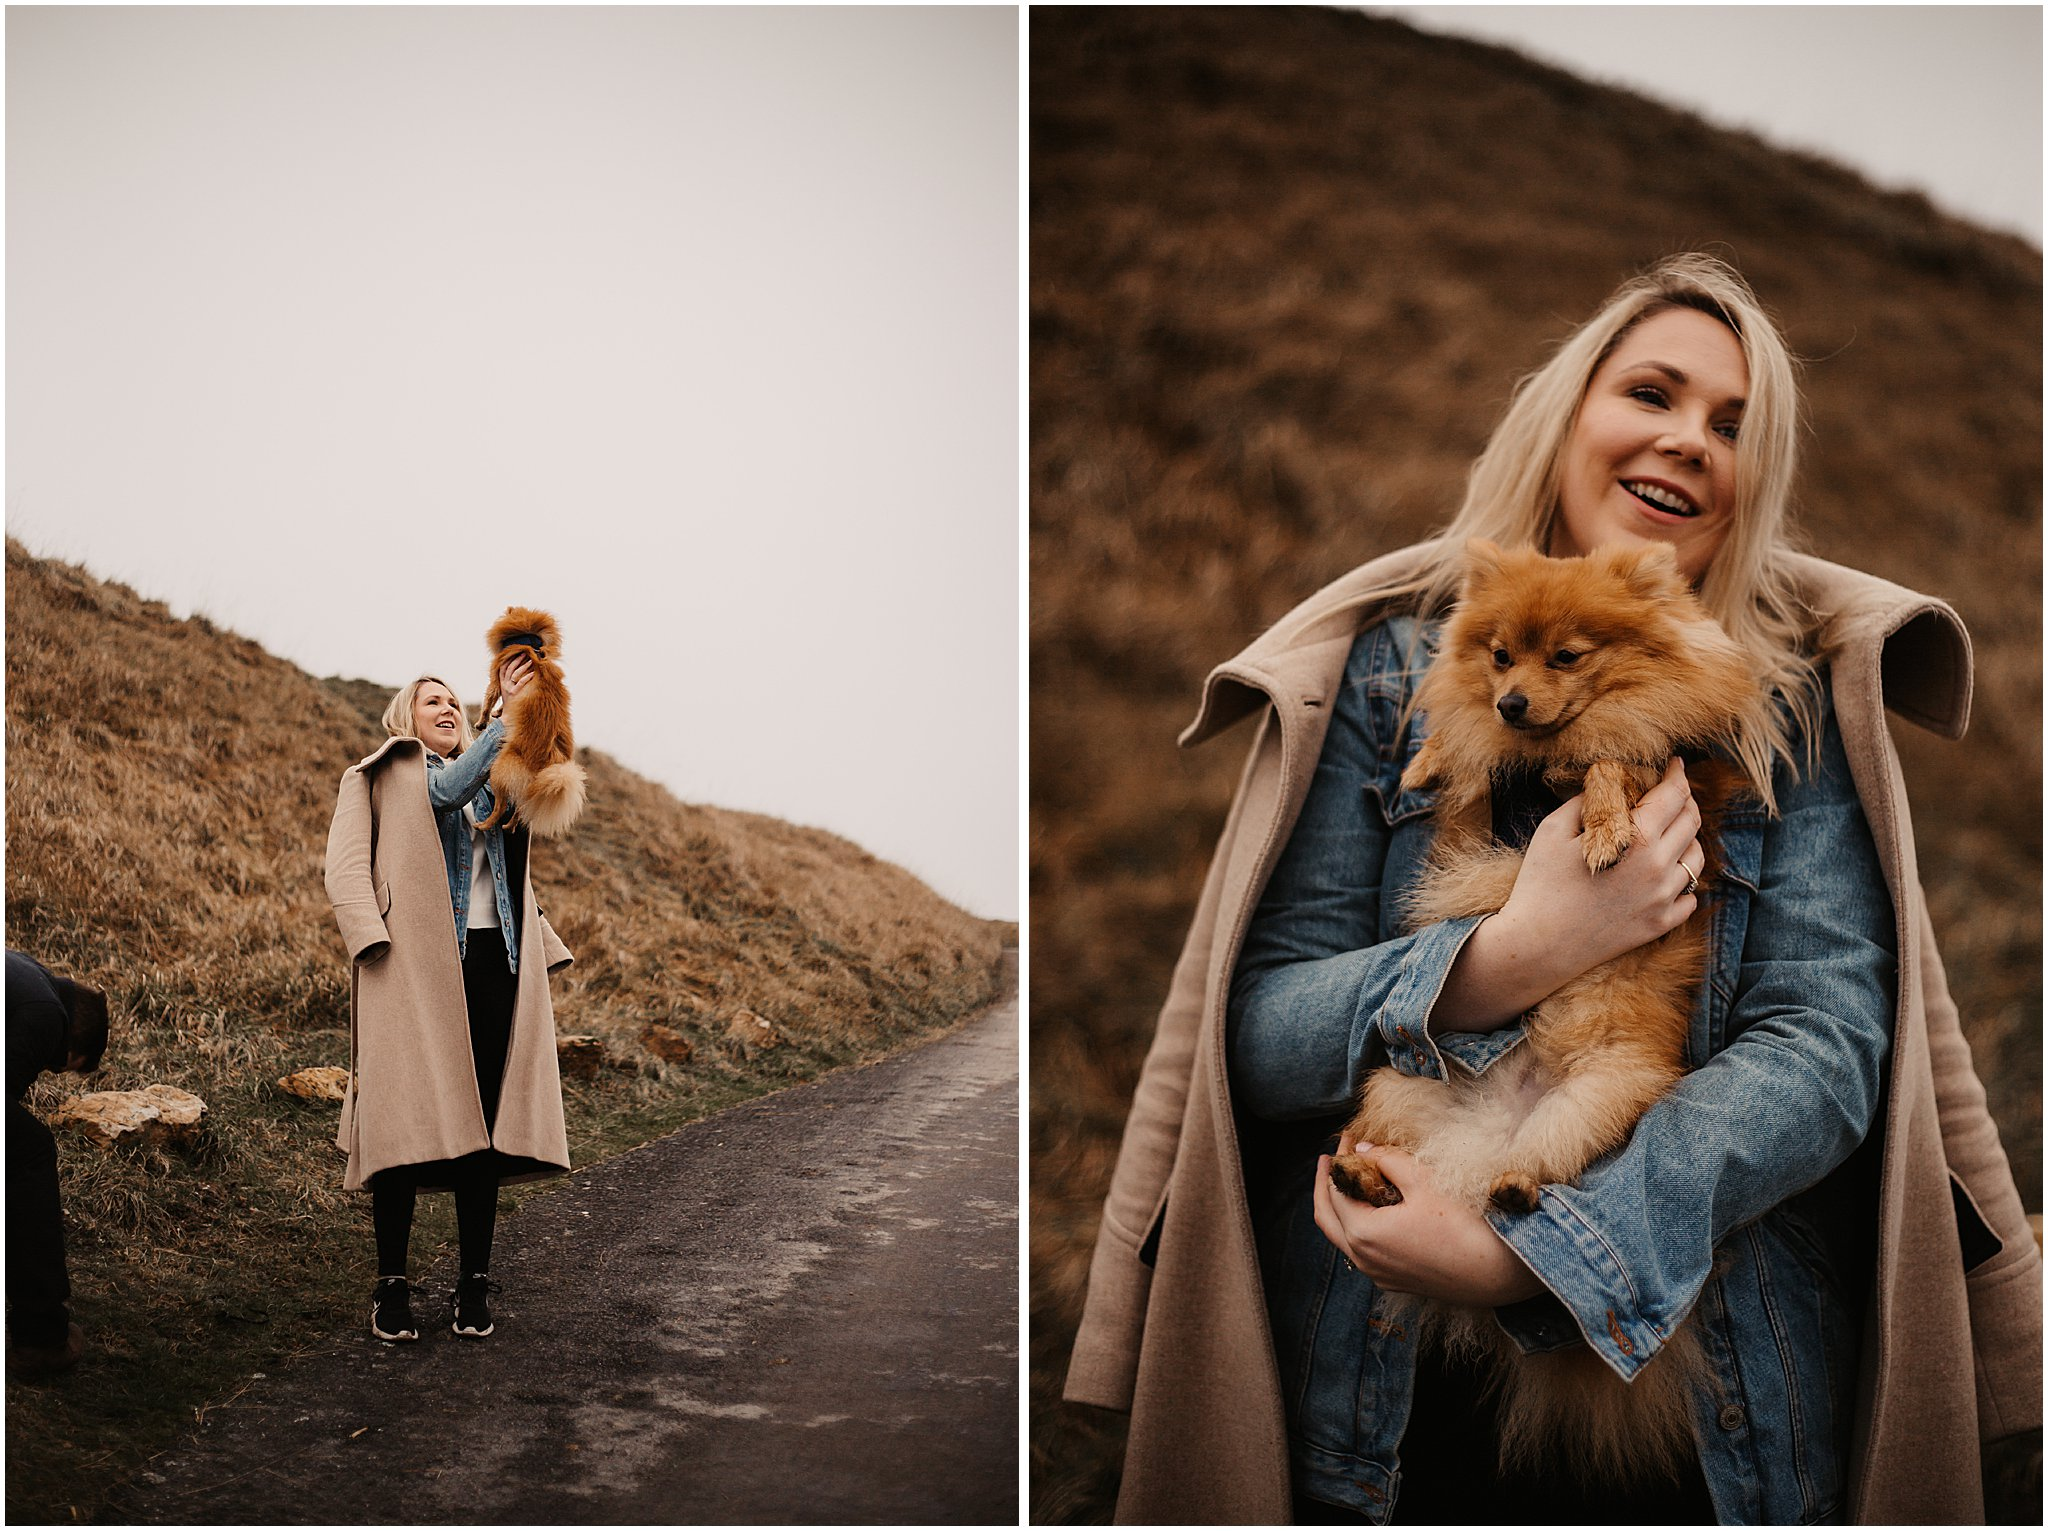 Mike & Charley_s Winter Engagement Shoot Wiltshire-71.jpg